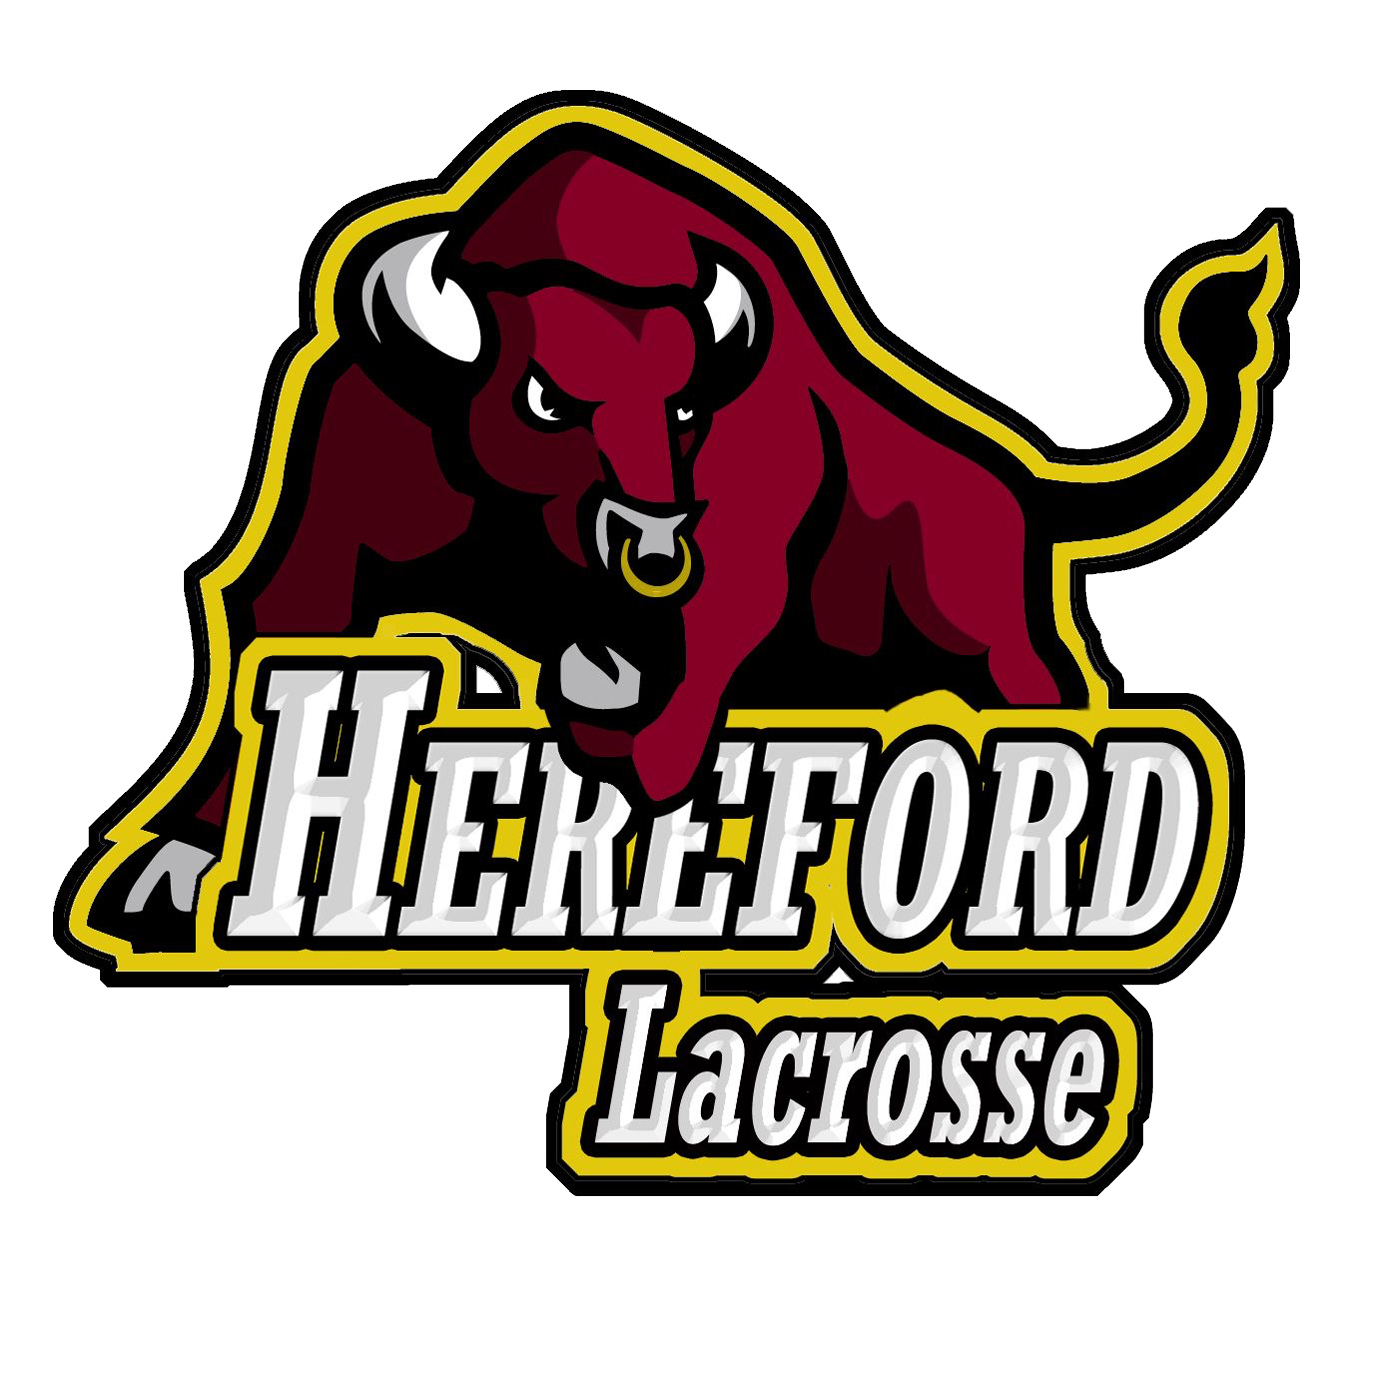 contact us hereford lacrosse